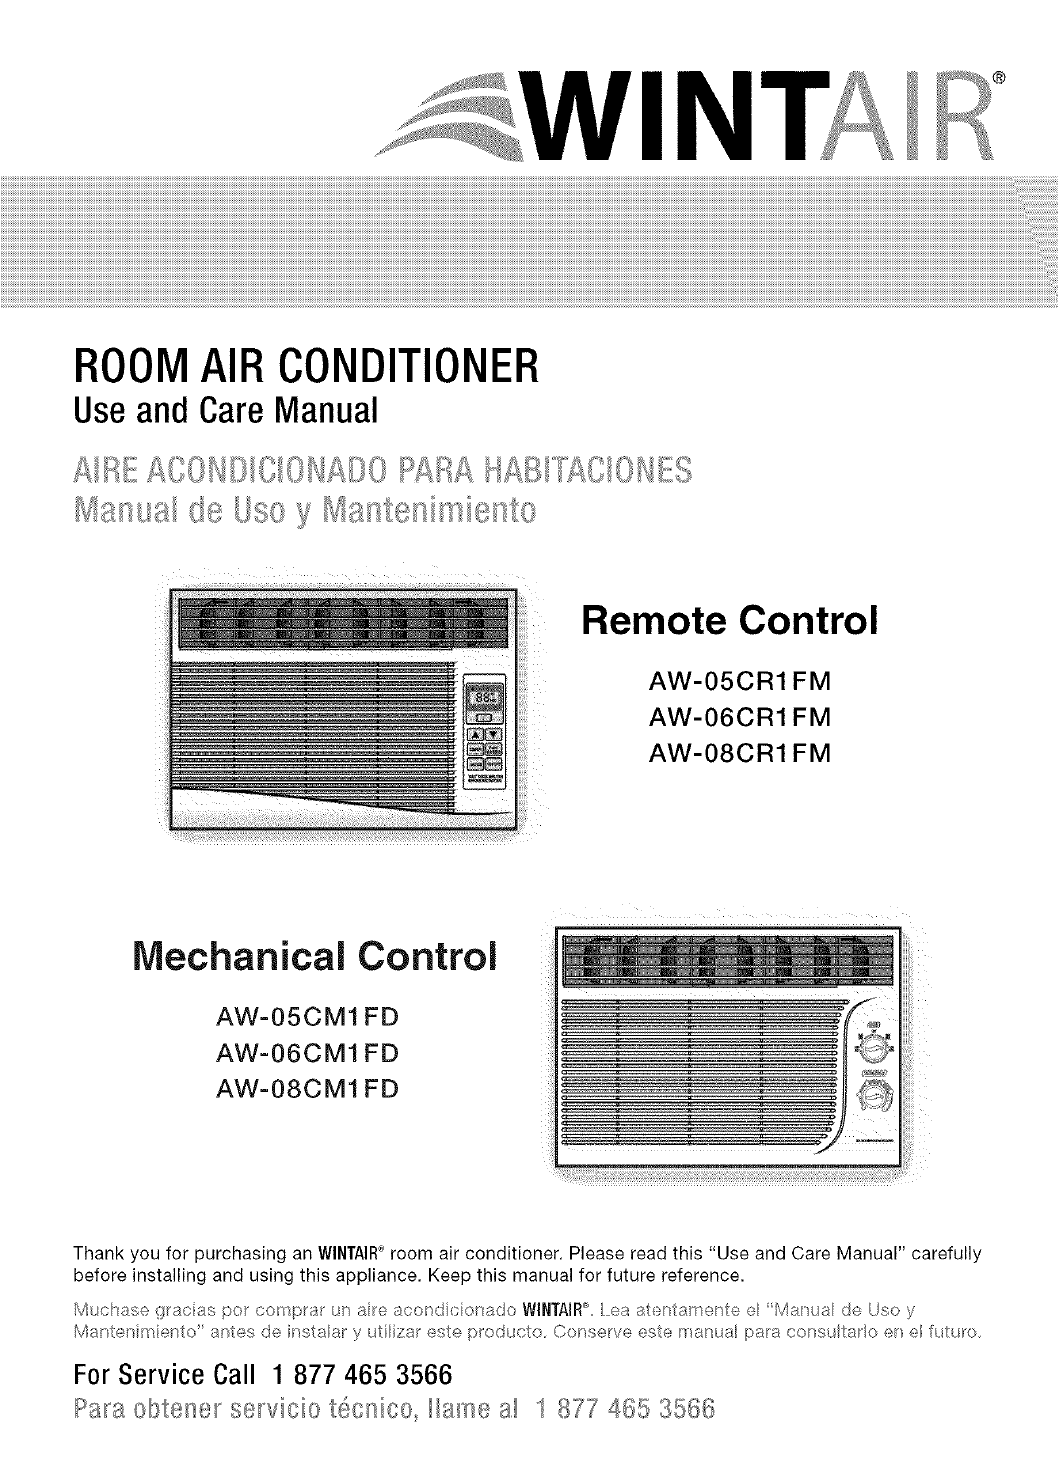 admiral kelon aw 06cr1fm user manual air conditioner manuals and rh usermanual wiki Admiral Air Conditioner Remote Control Admiral Window Air Conditioner